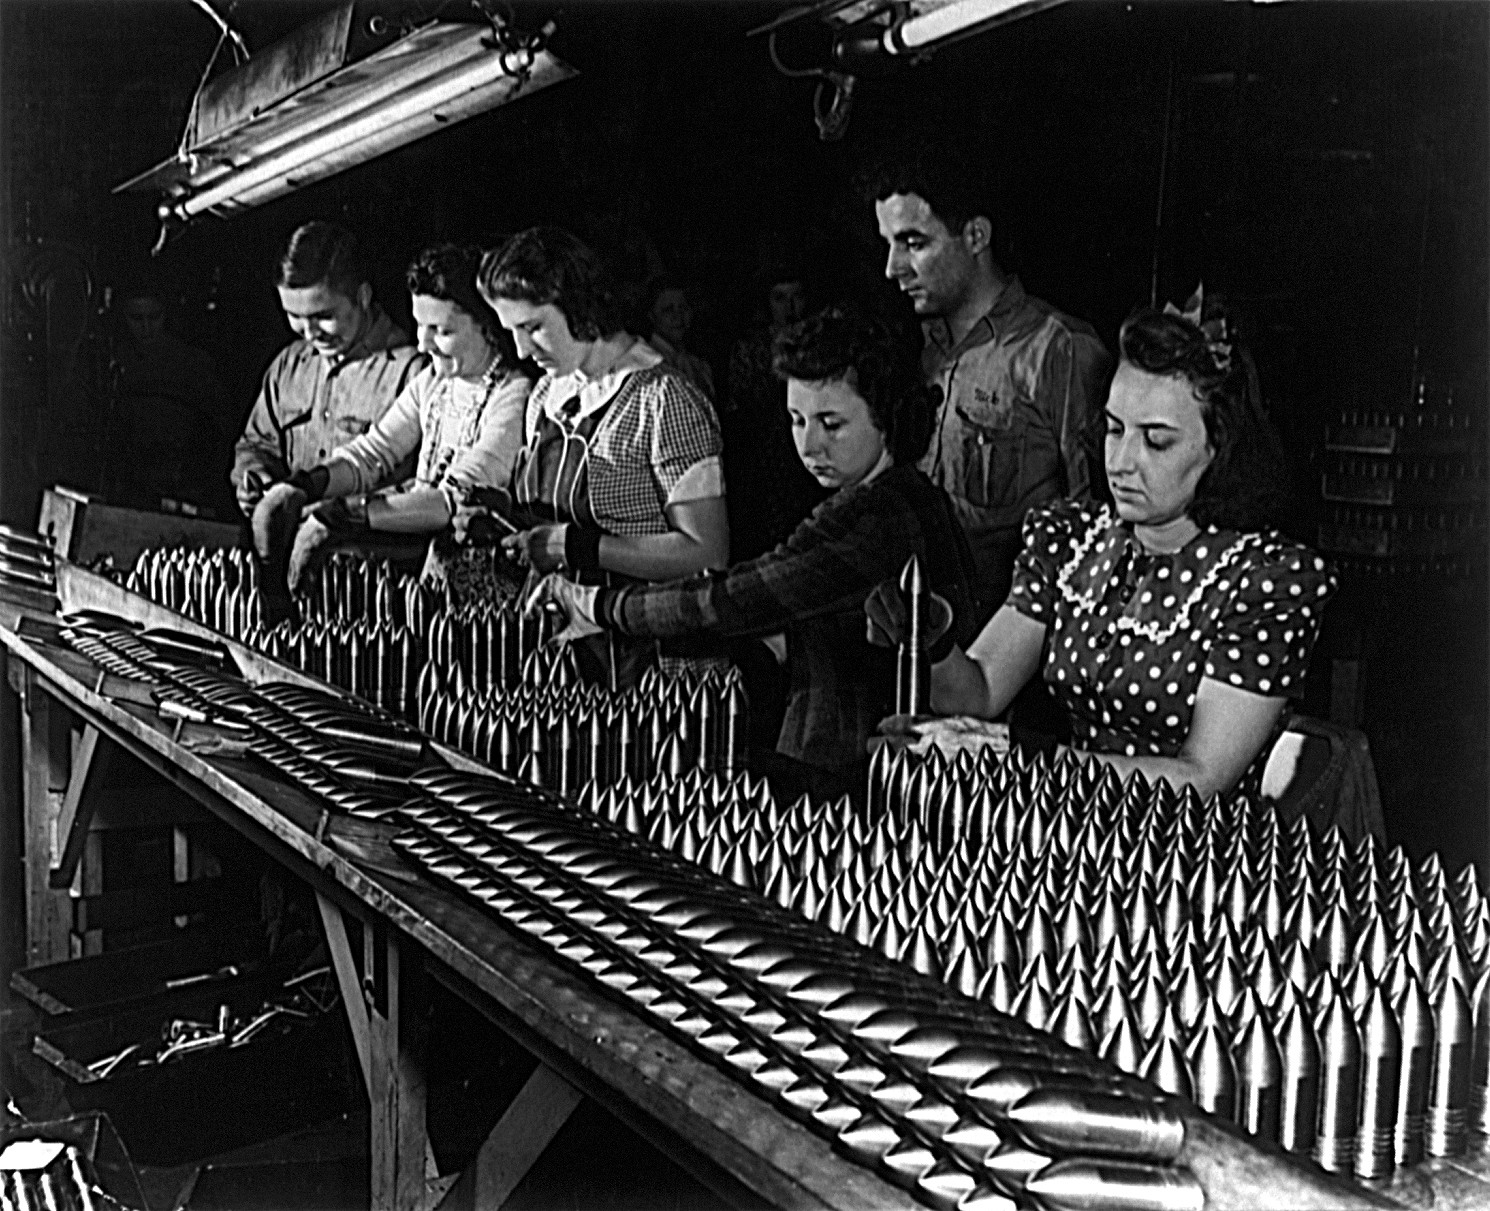 Women work in a munitions factory during WWII